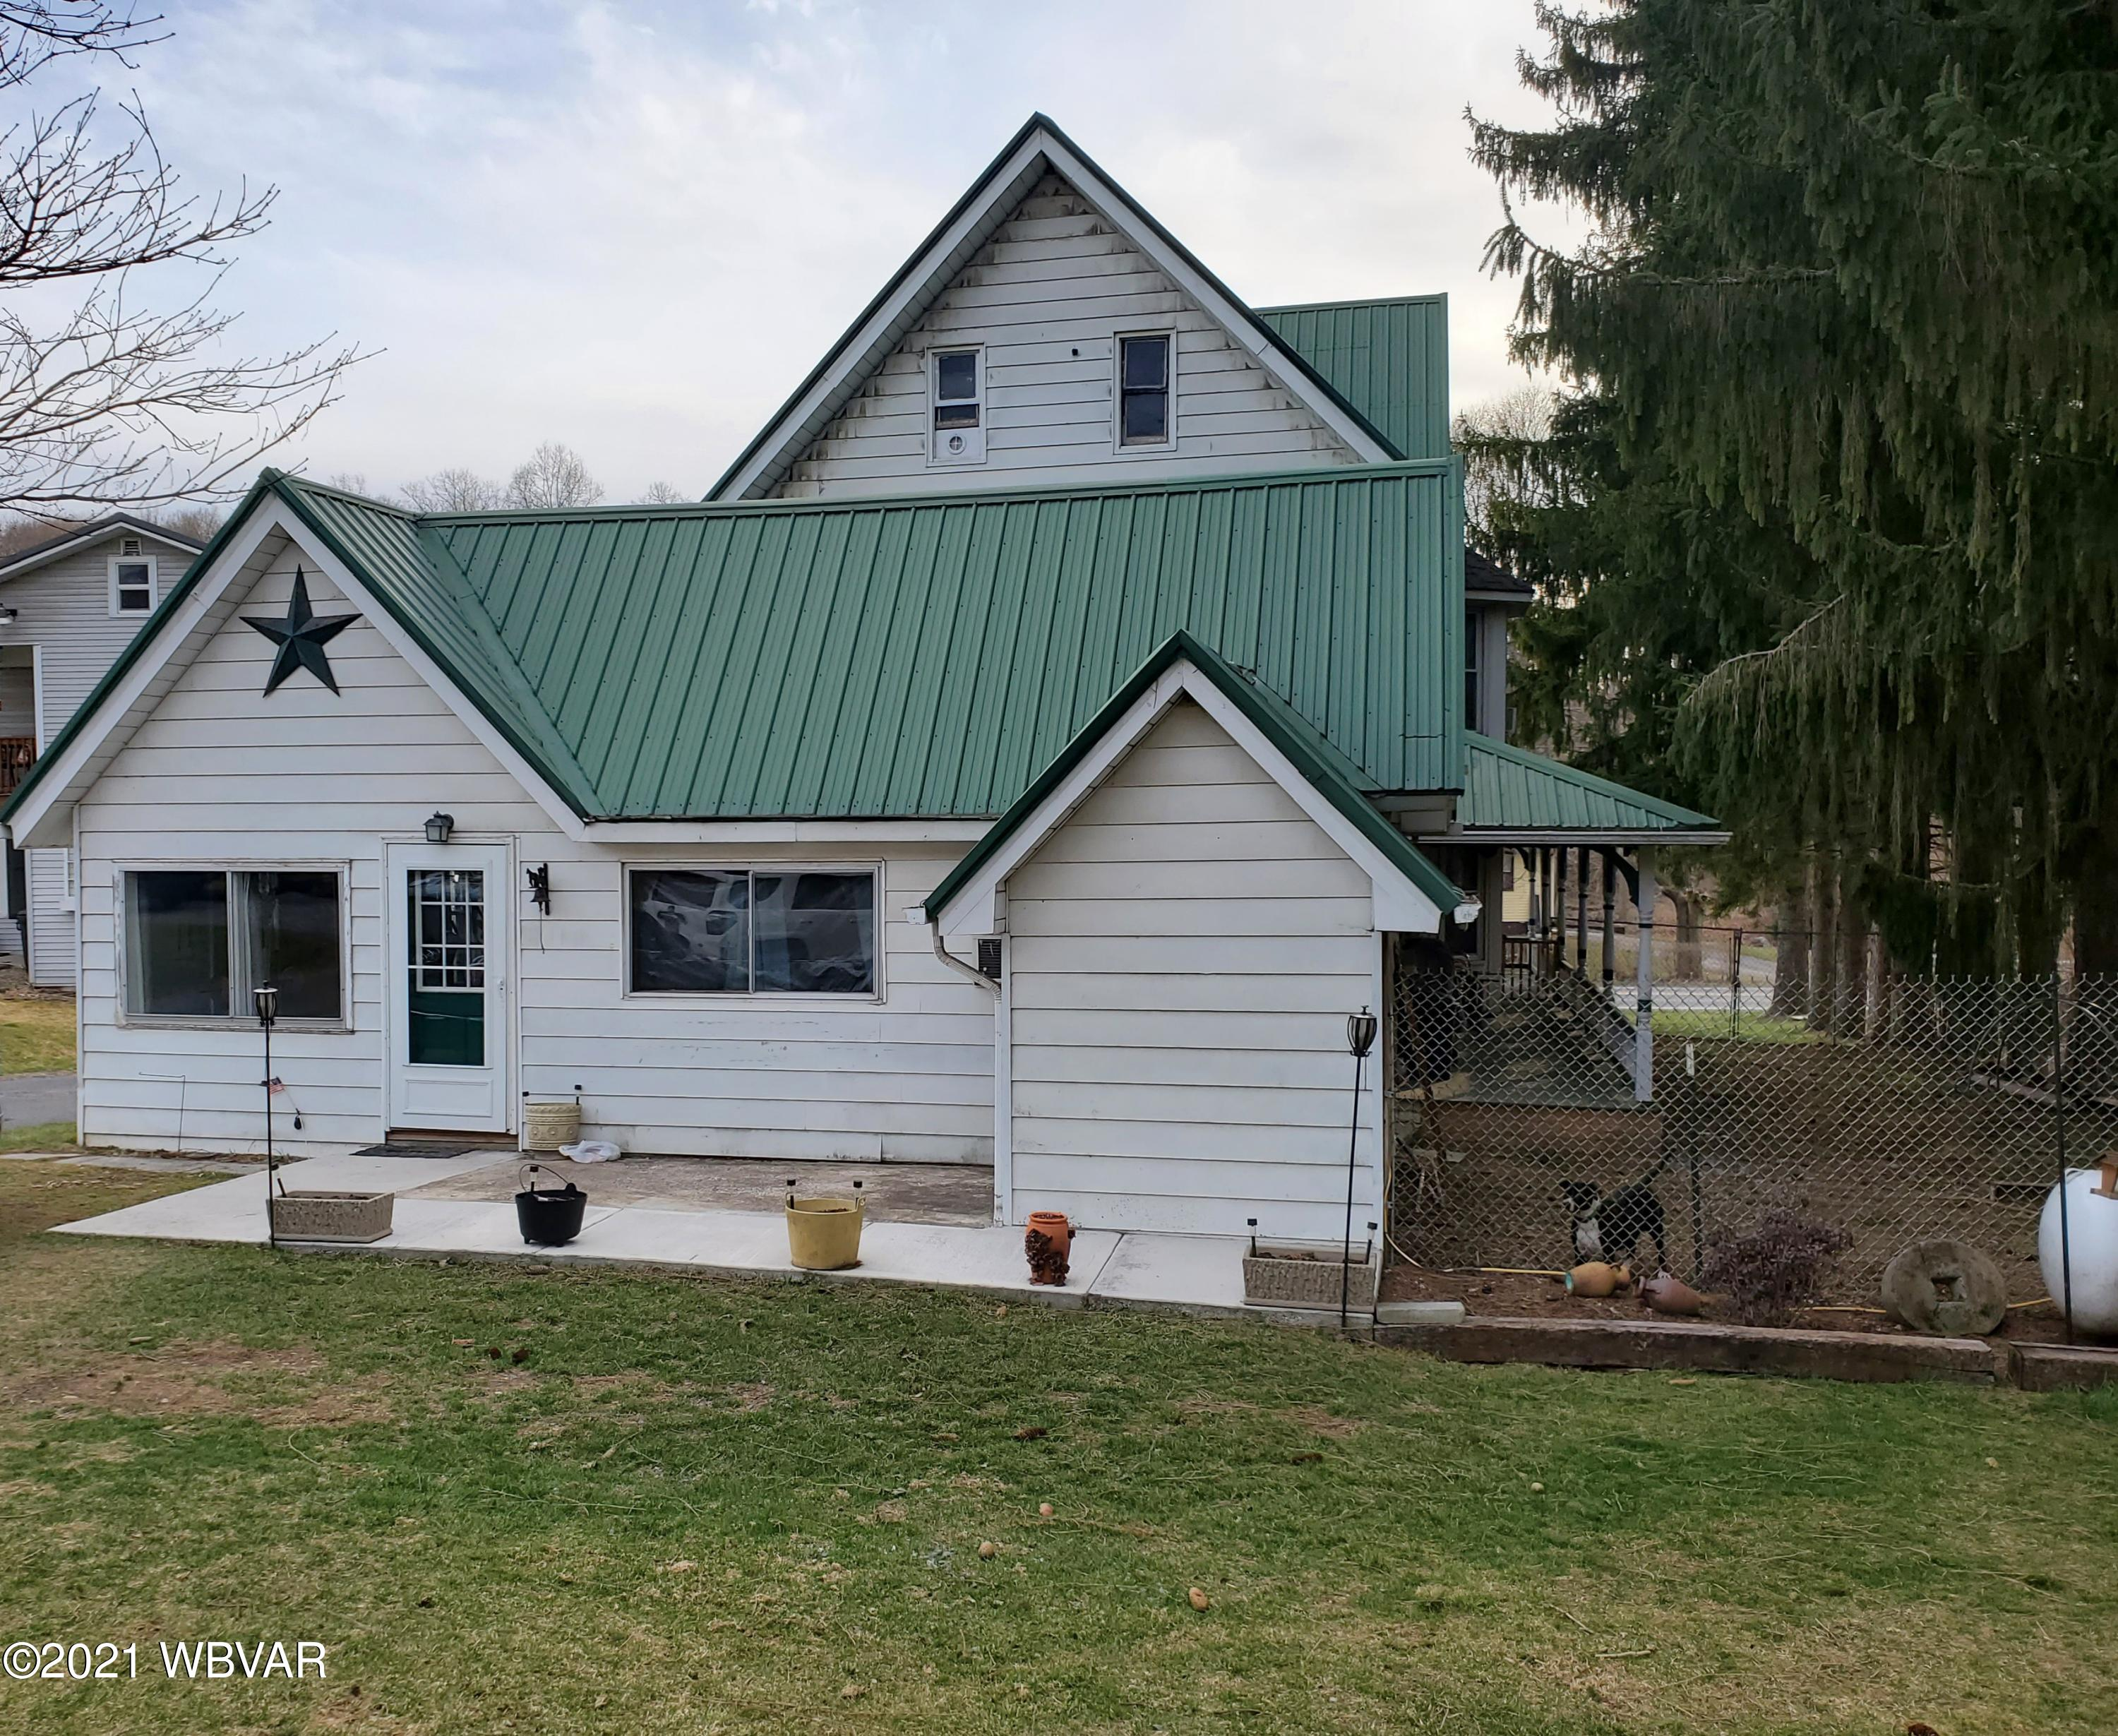 429 LONG RUN ROAD, Mill Hall, PA 17751, 5 Bedrooms Bedrooms, ,2 BathroomsBathrooms,Residential,For sale,LONG RUN,WB-92153